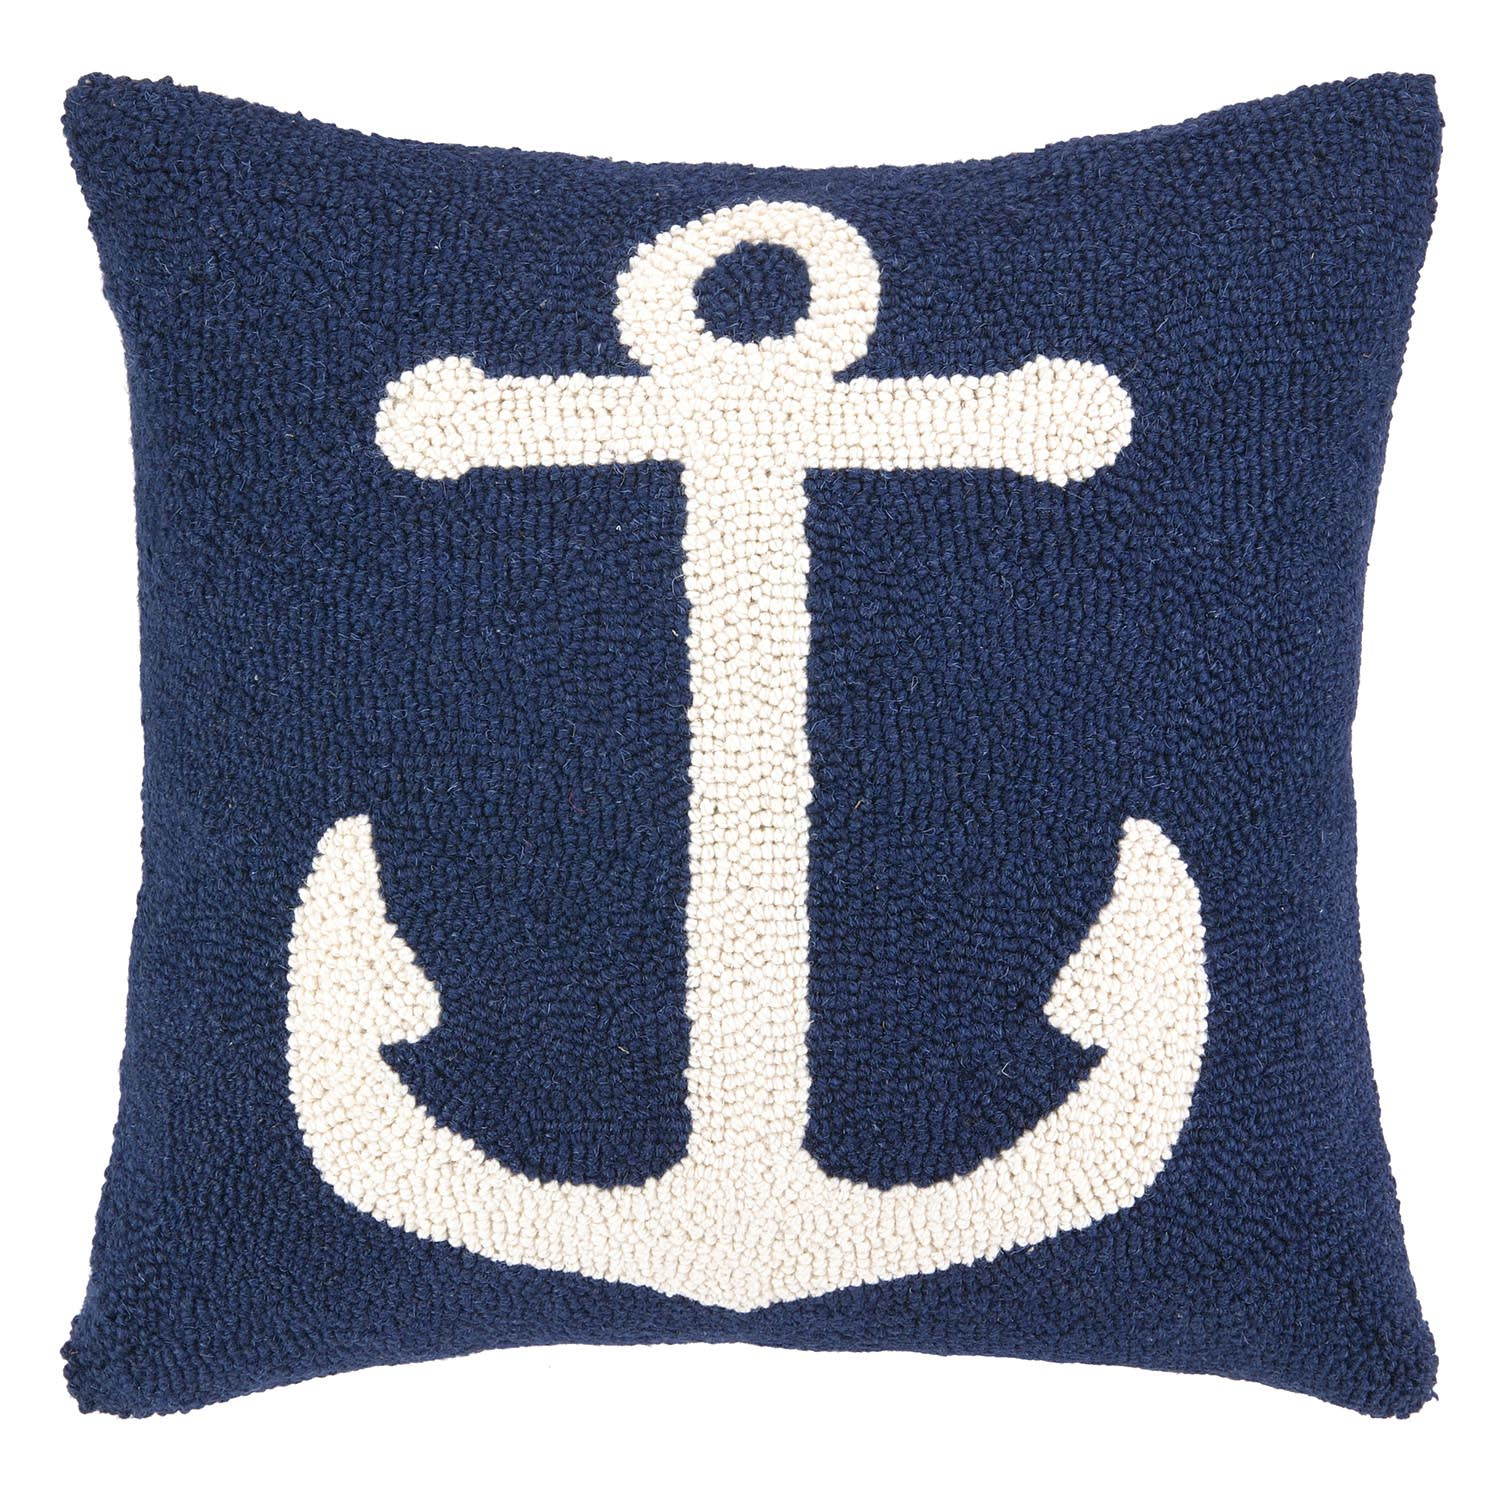 Navy Blue and White Throw Pillows